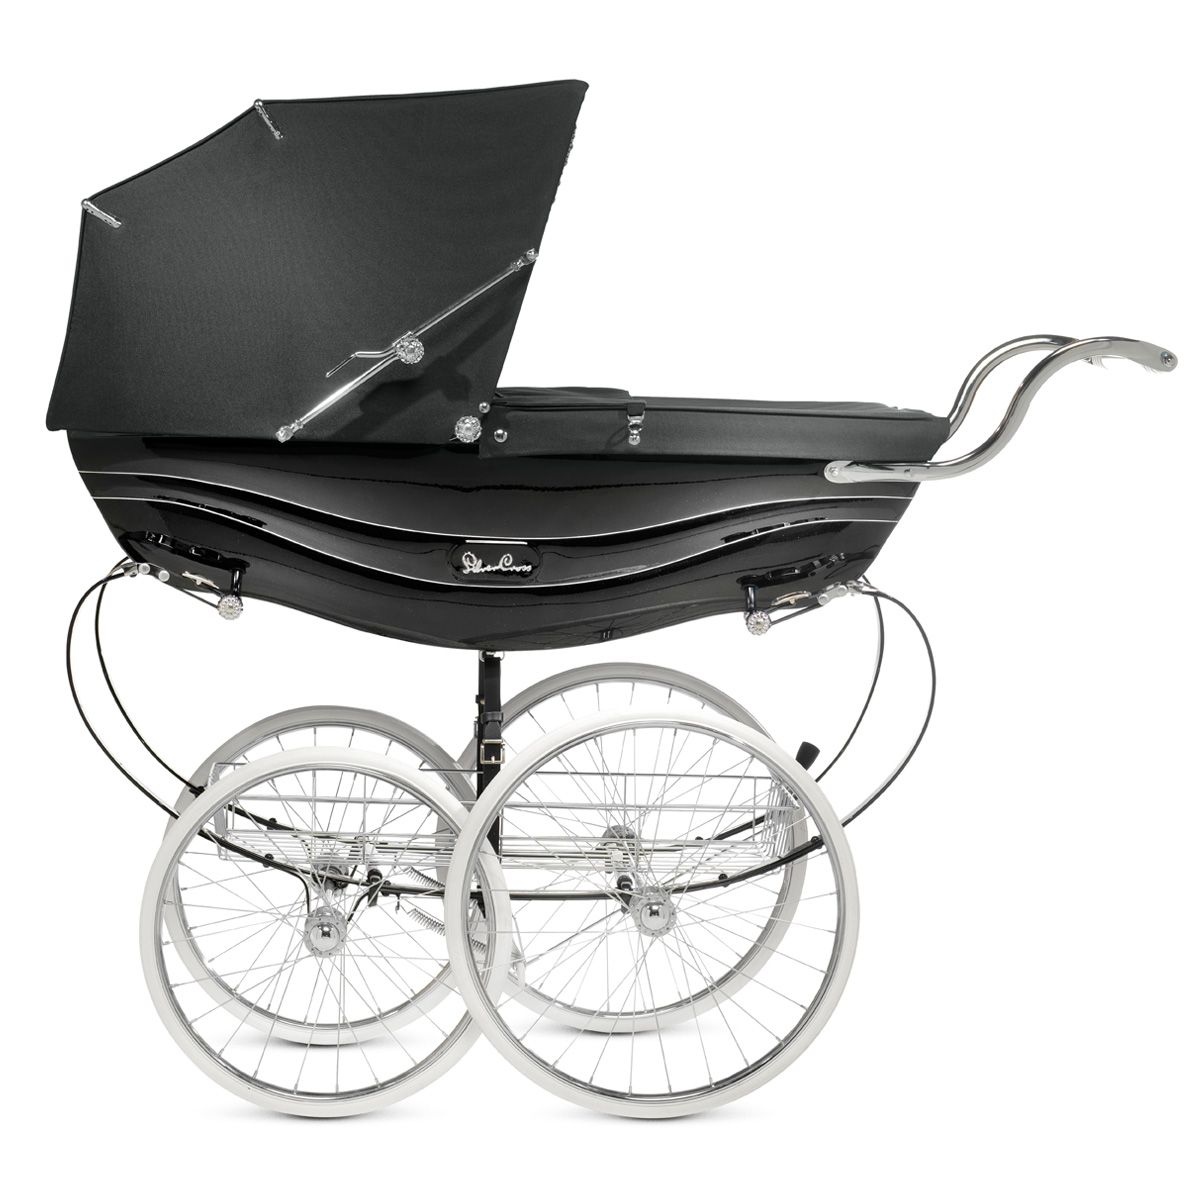 The Silver Cross Balmoral Coach Built Pram Shown Here In